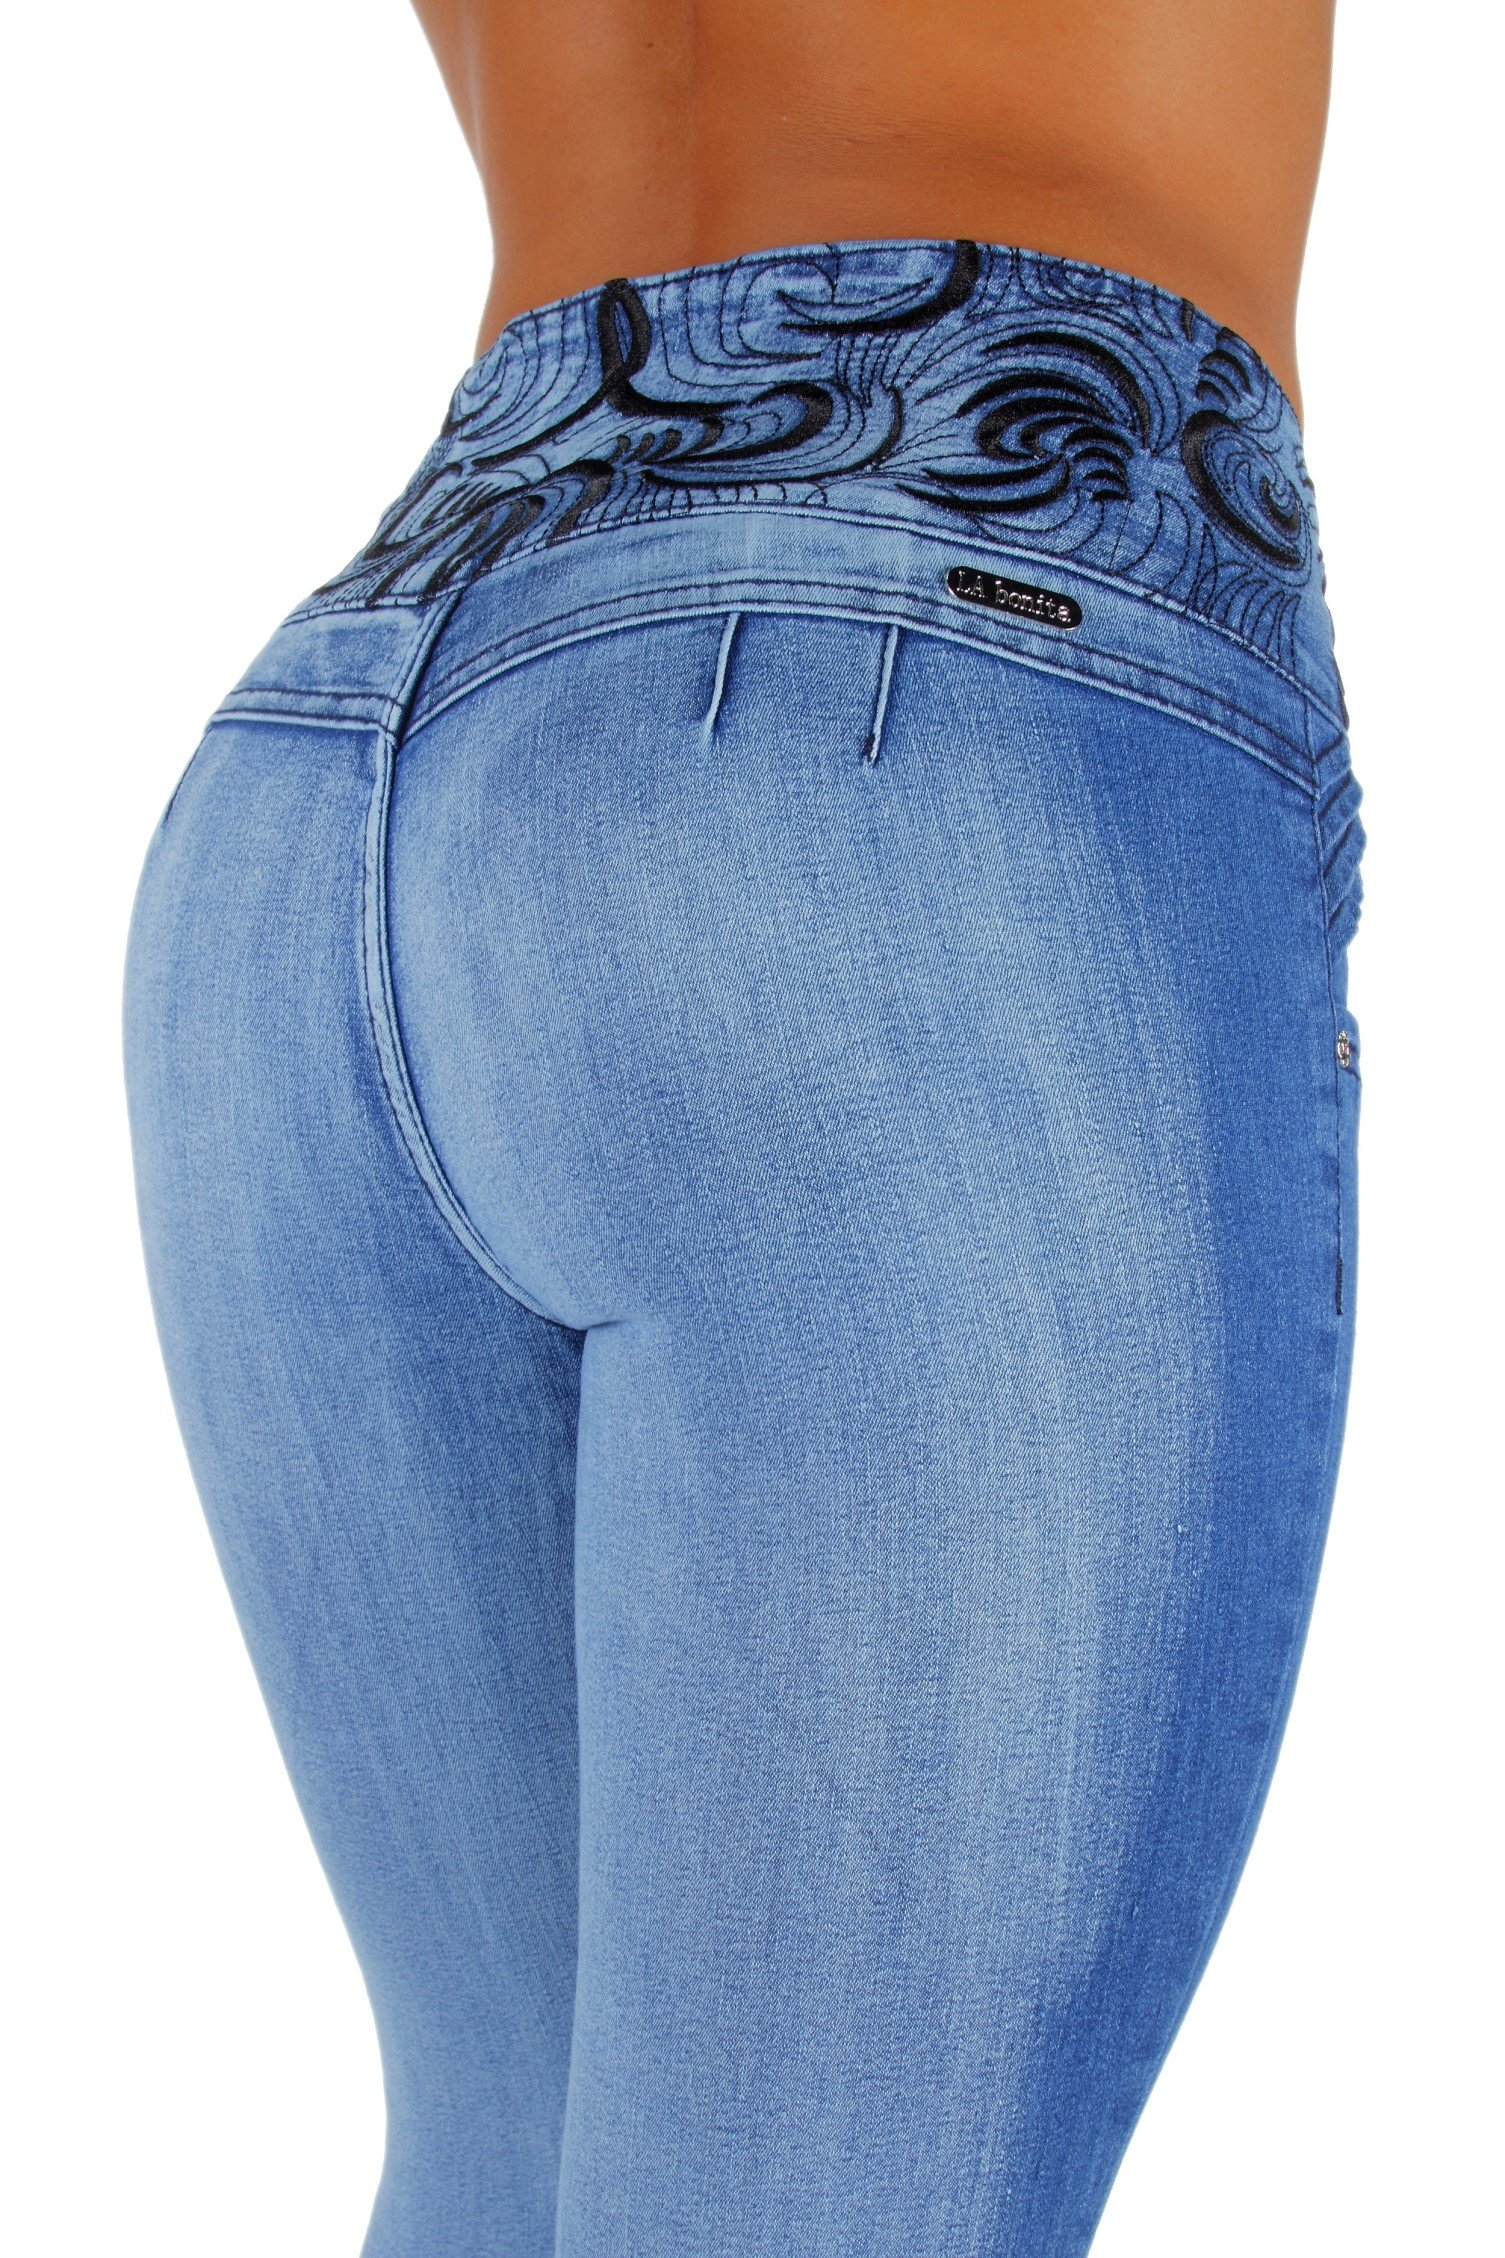 Fashion2Love Style LA6A078aS – Colombian Design, Mid Waist, Butt Lift, Skinny Jeans in Washed Light Blue Size 1